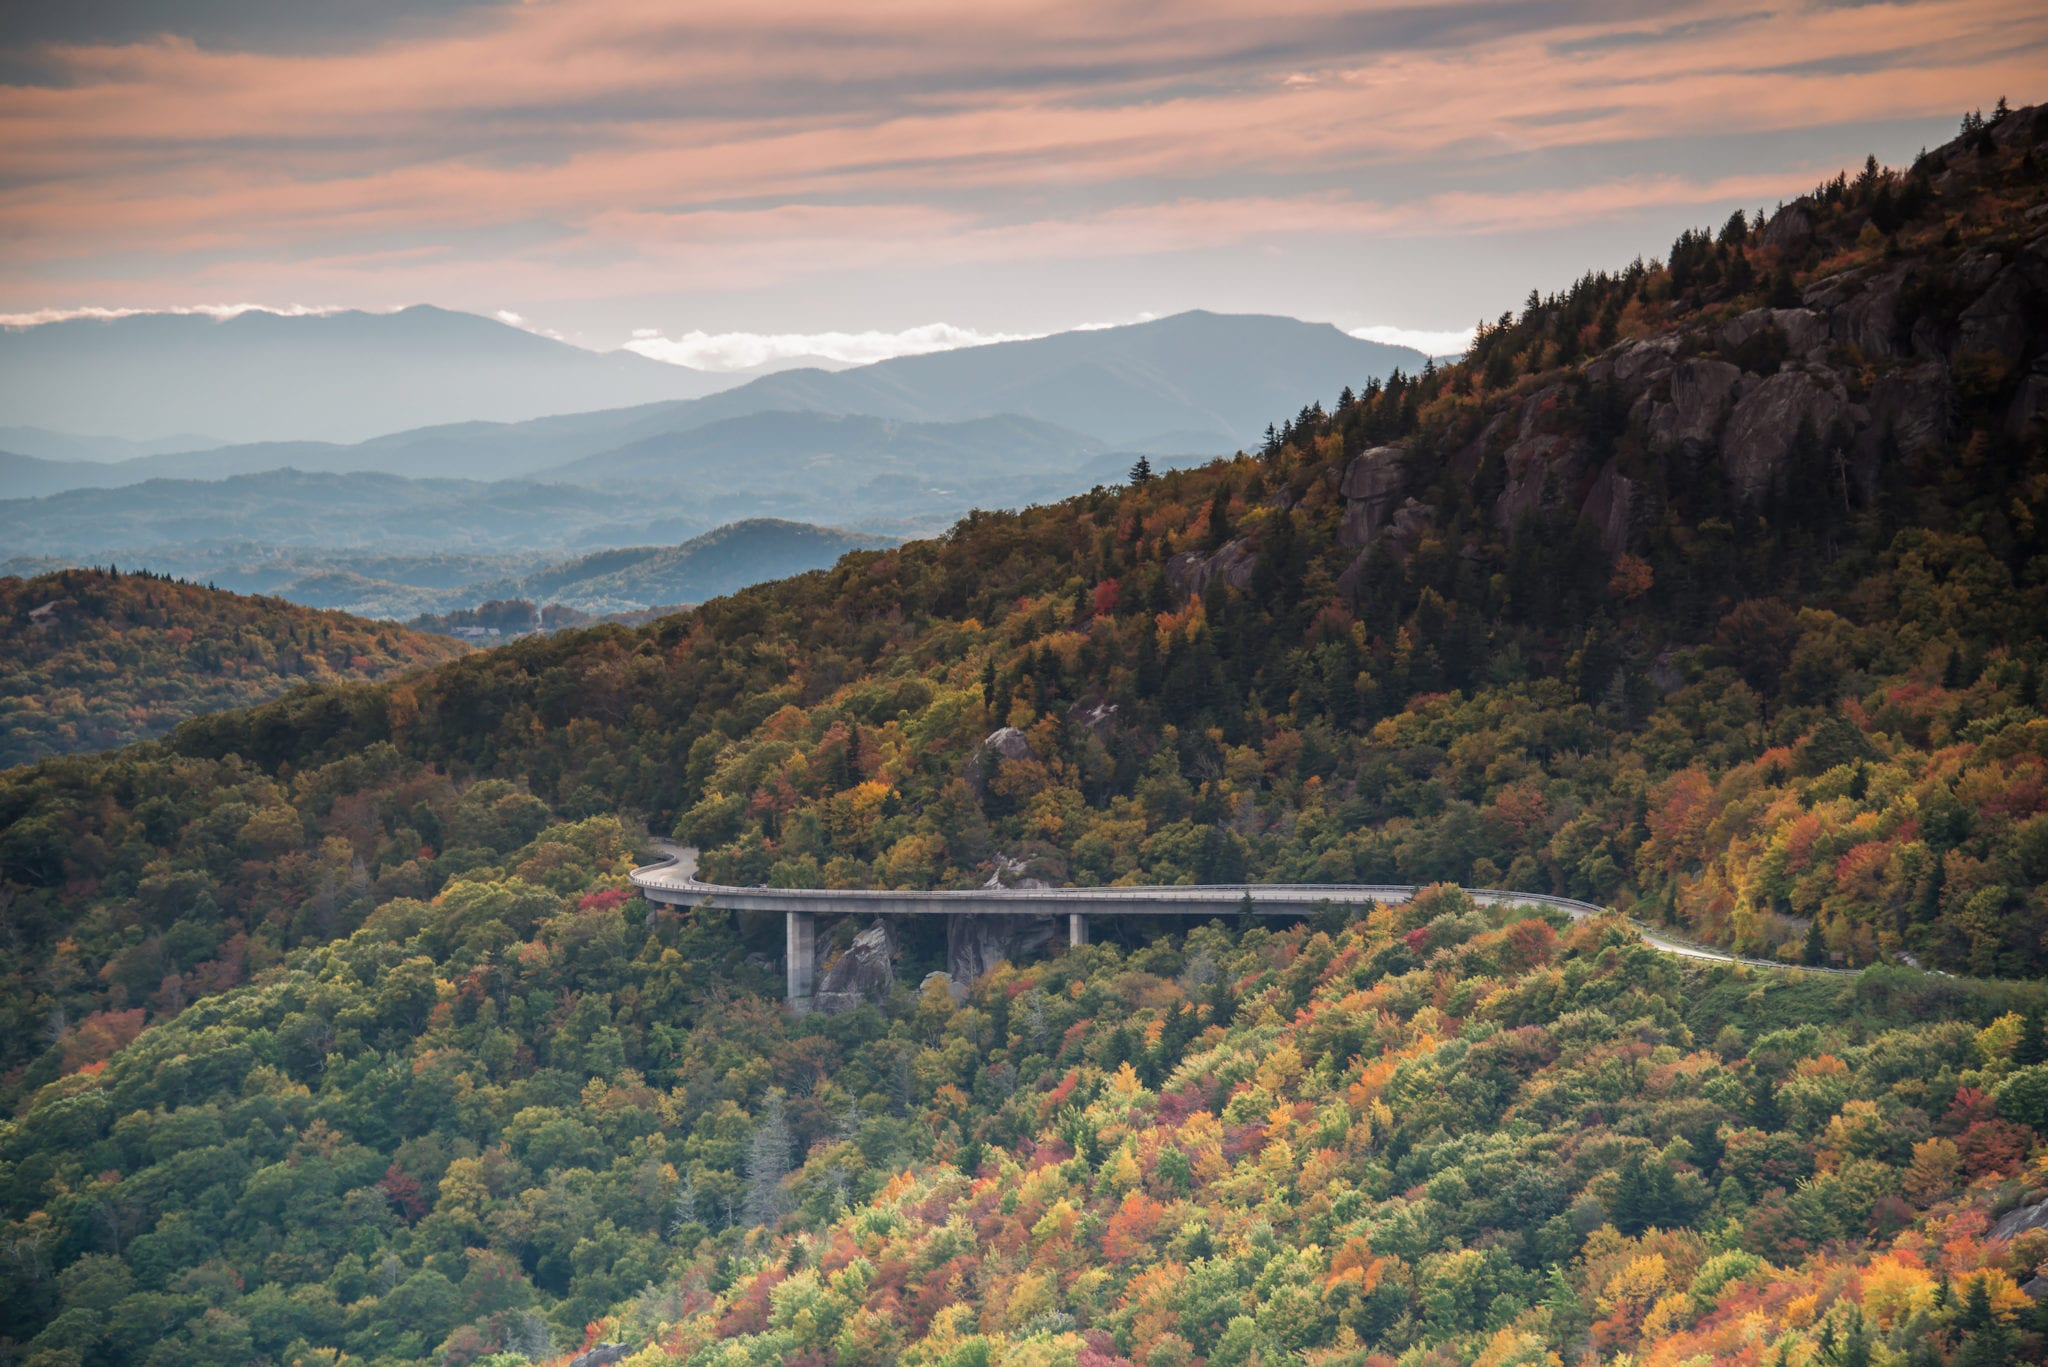 BLOWING ROCK, NC